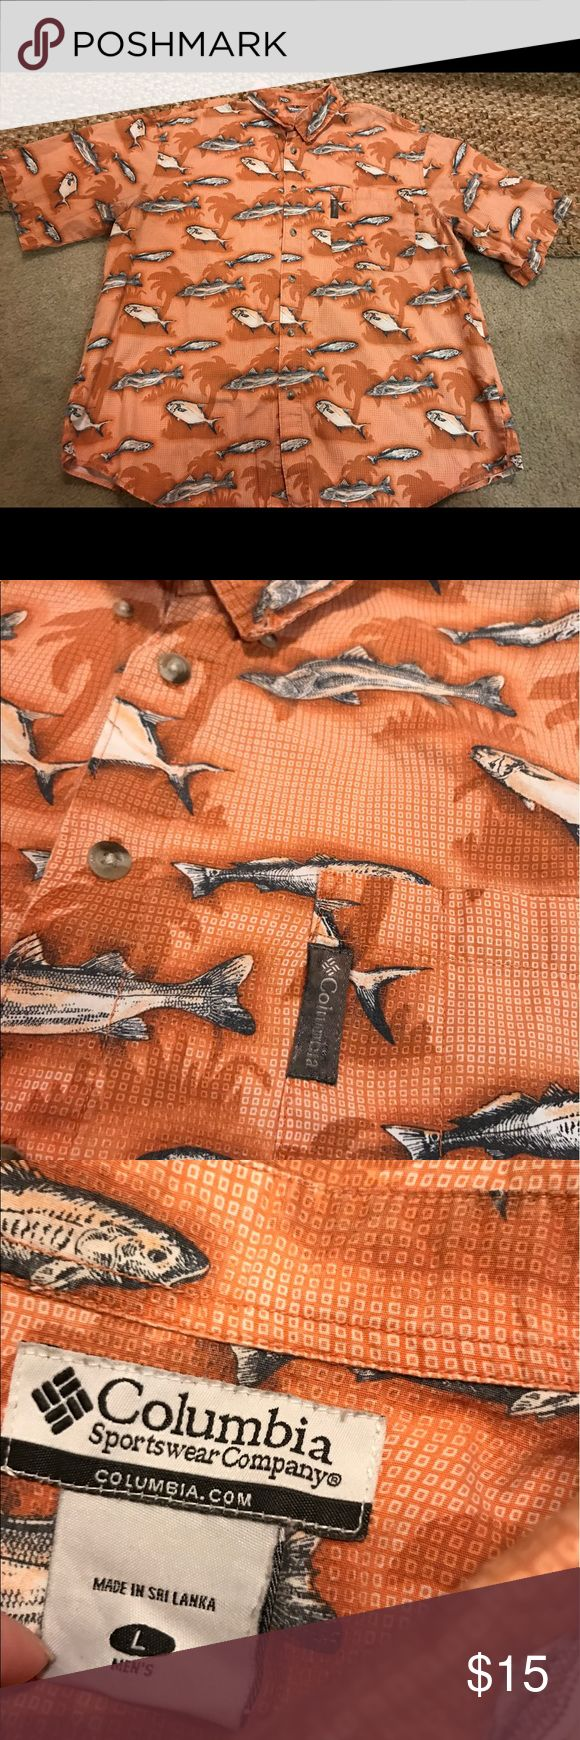 Men's Columbia fishing shirt size large Good condition! Orange with fish and palm trees Columbia Shirts Casual Button Down Shirts